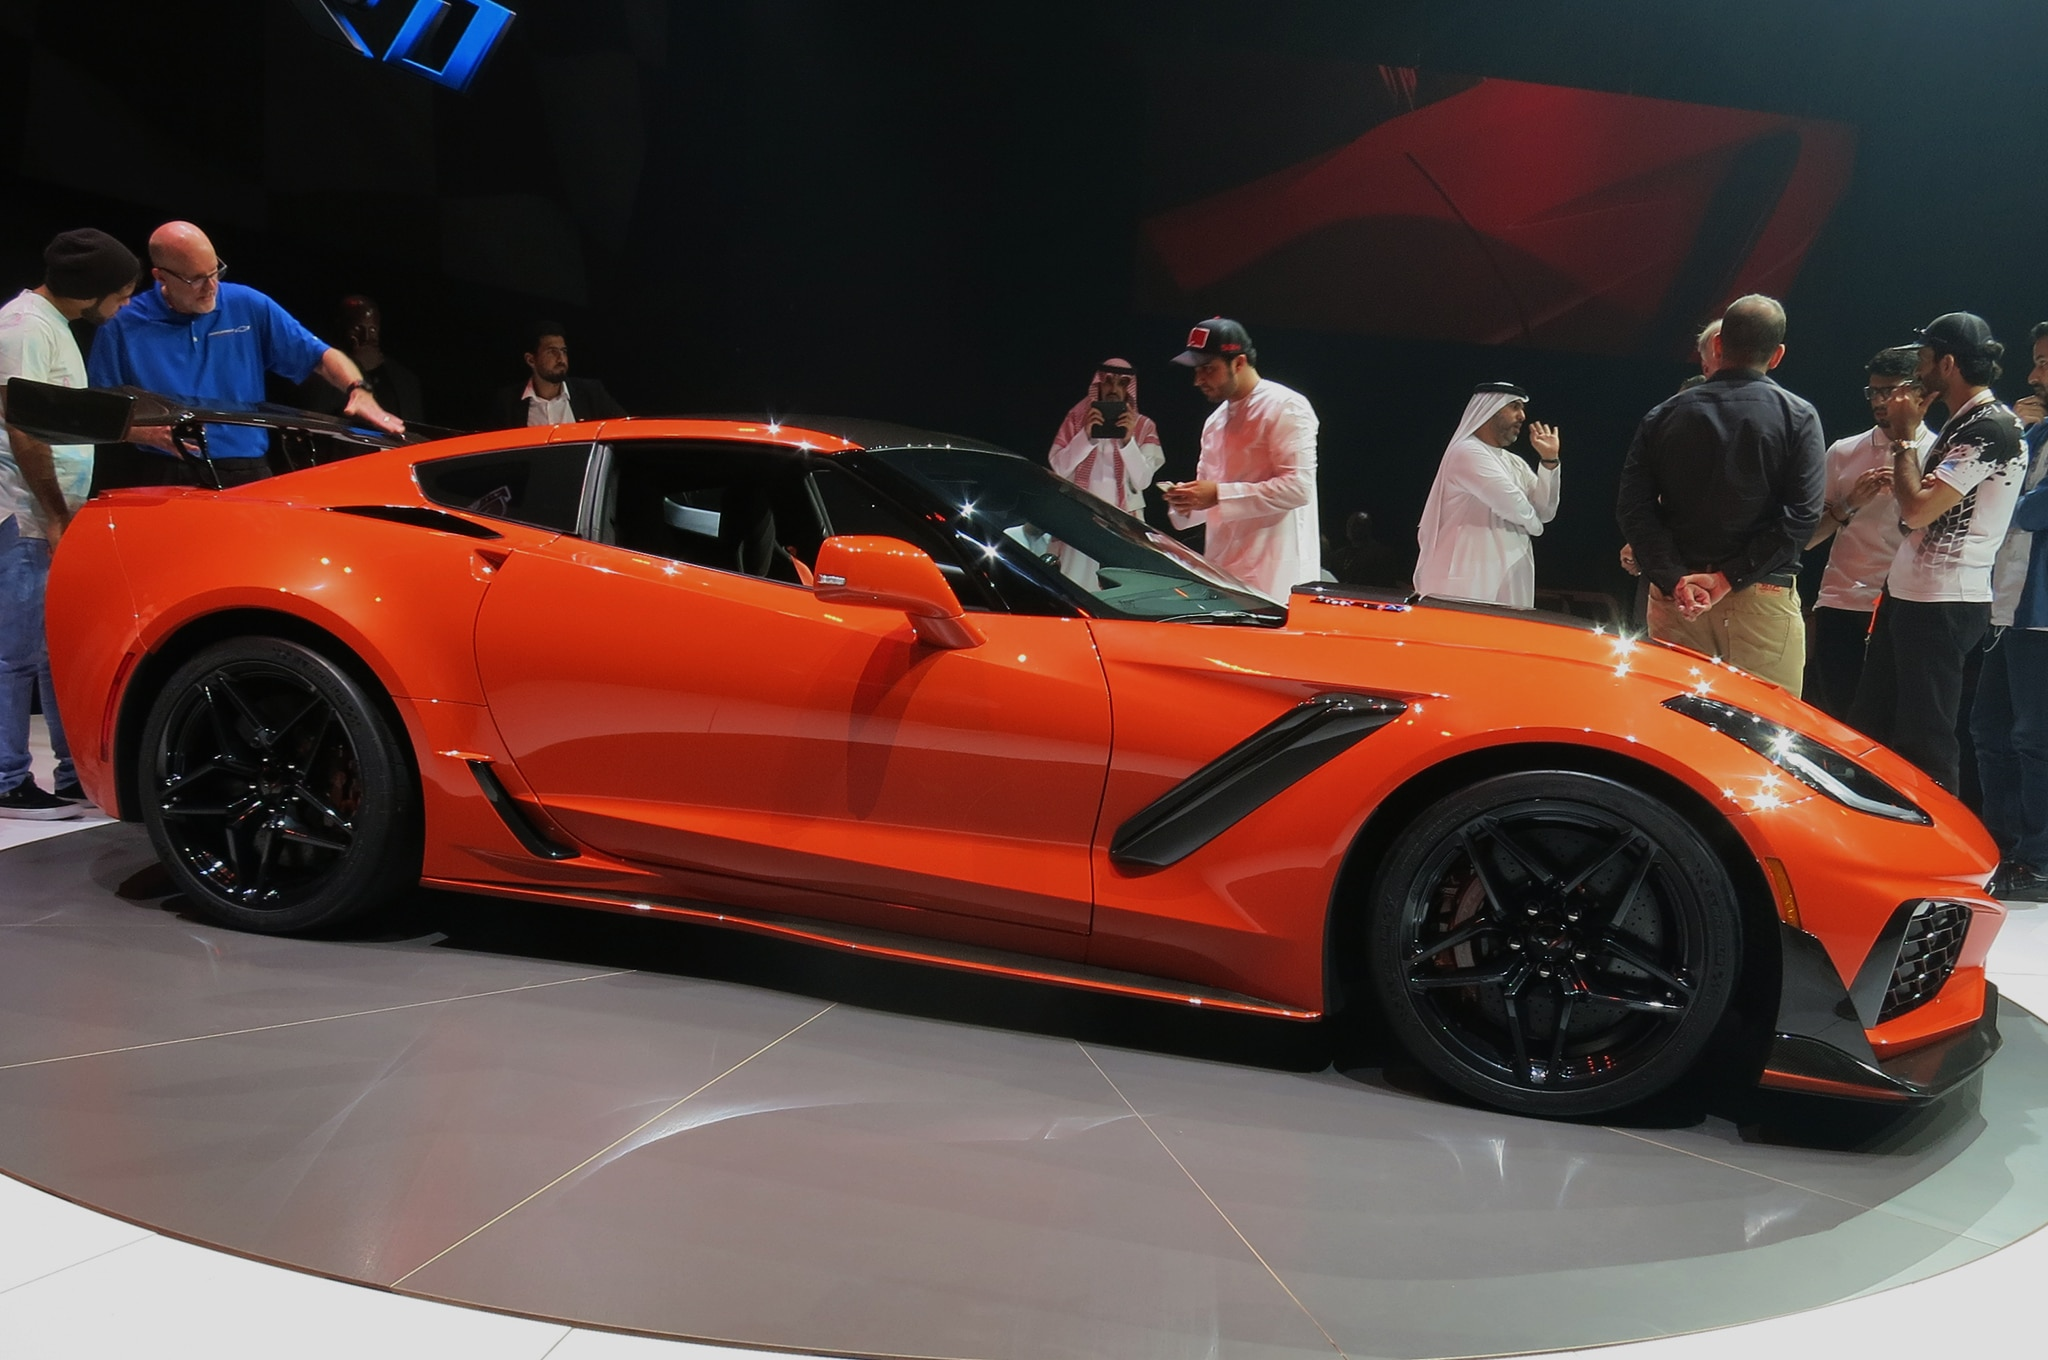 755 horsepower 2019 chevy corvette zr1 is the fastest, most powerfulNew 20 17 Chevy Corvette #6